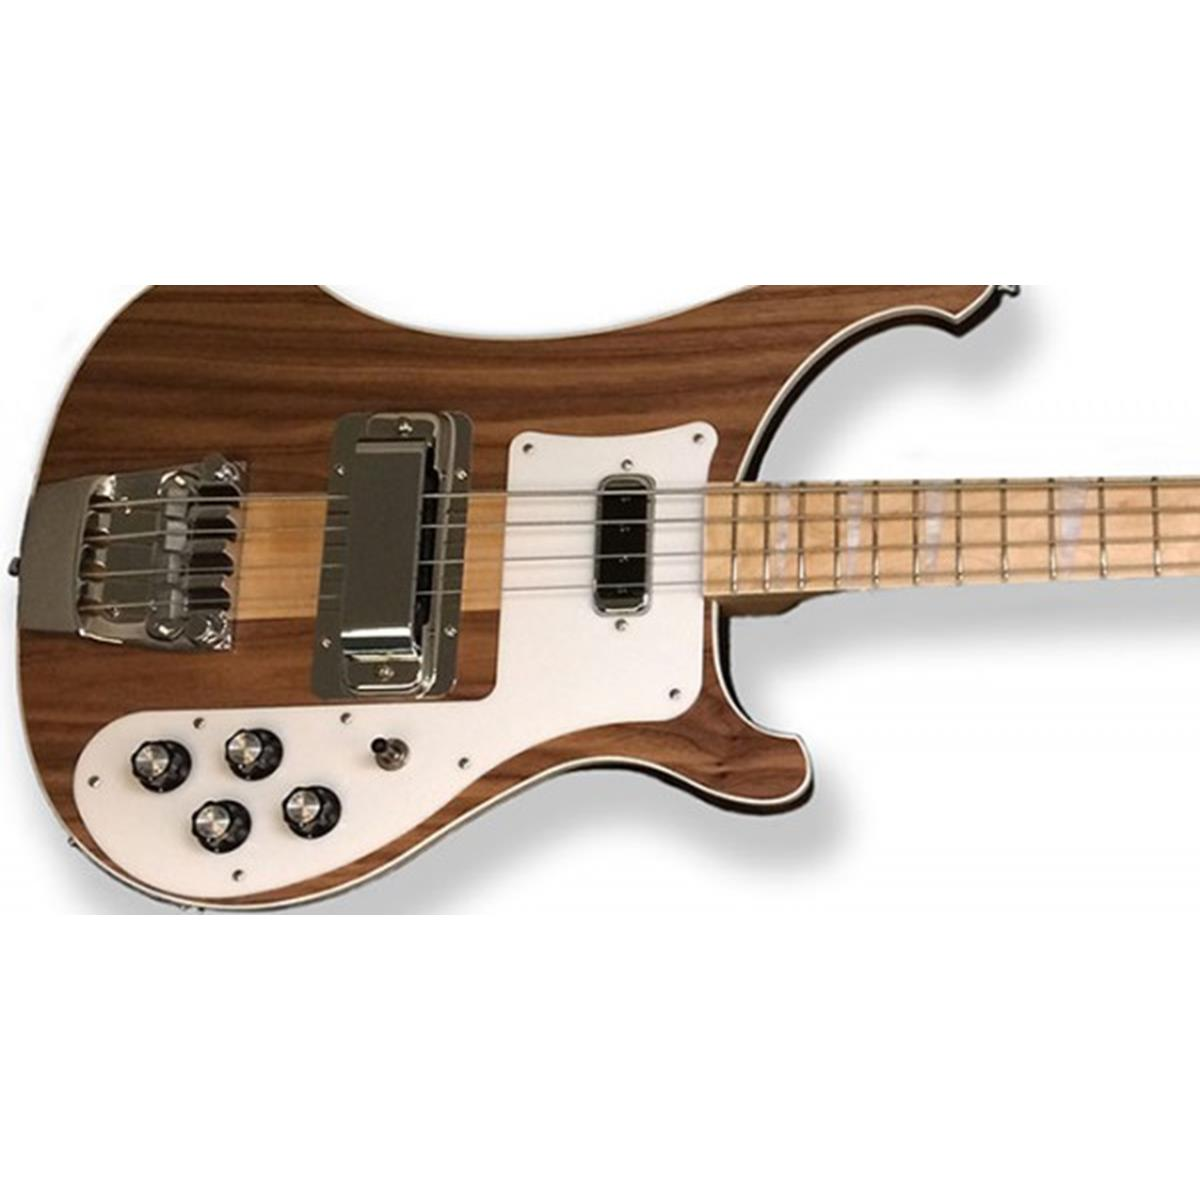 RICKENBACKER 4003 W BASS WALNUT FINISH ltd